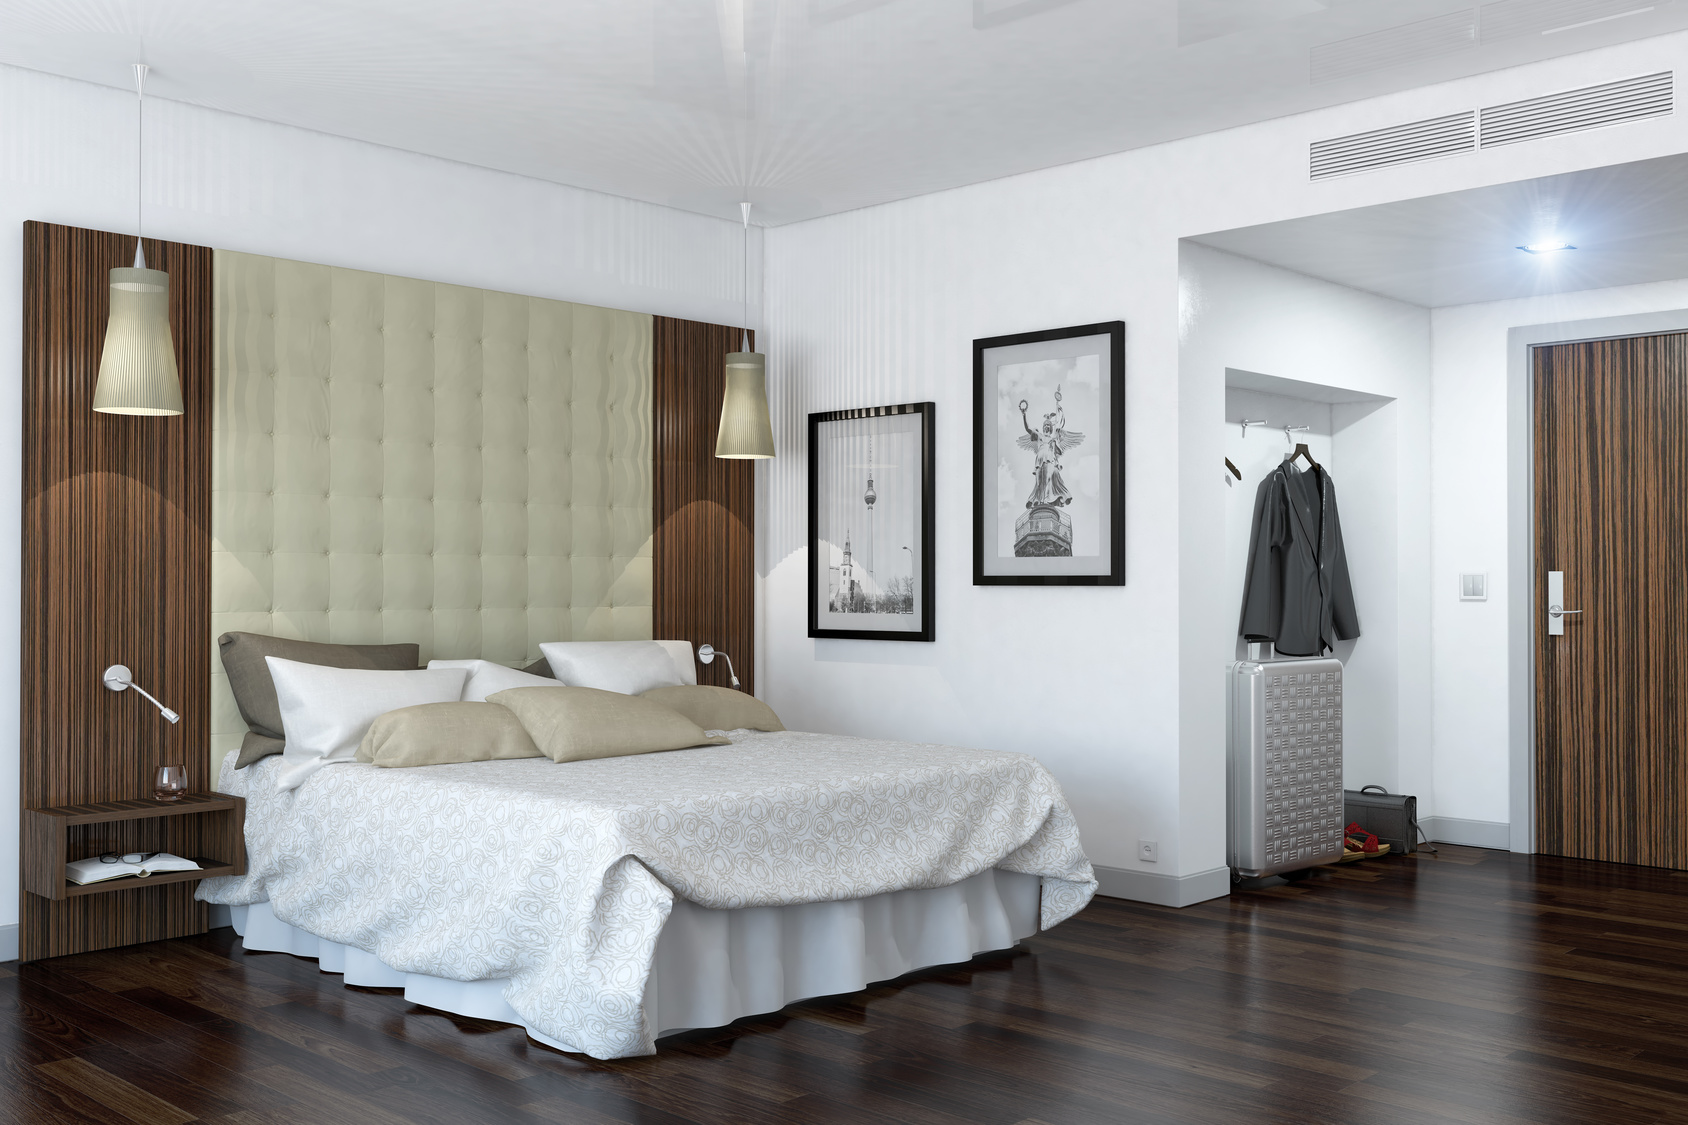 Friday hotel in prag warnhinweise bewertungen adresse for Design hotel pauschalreise